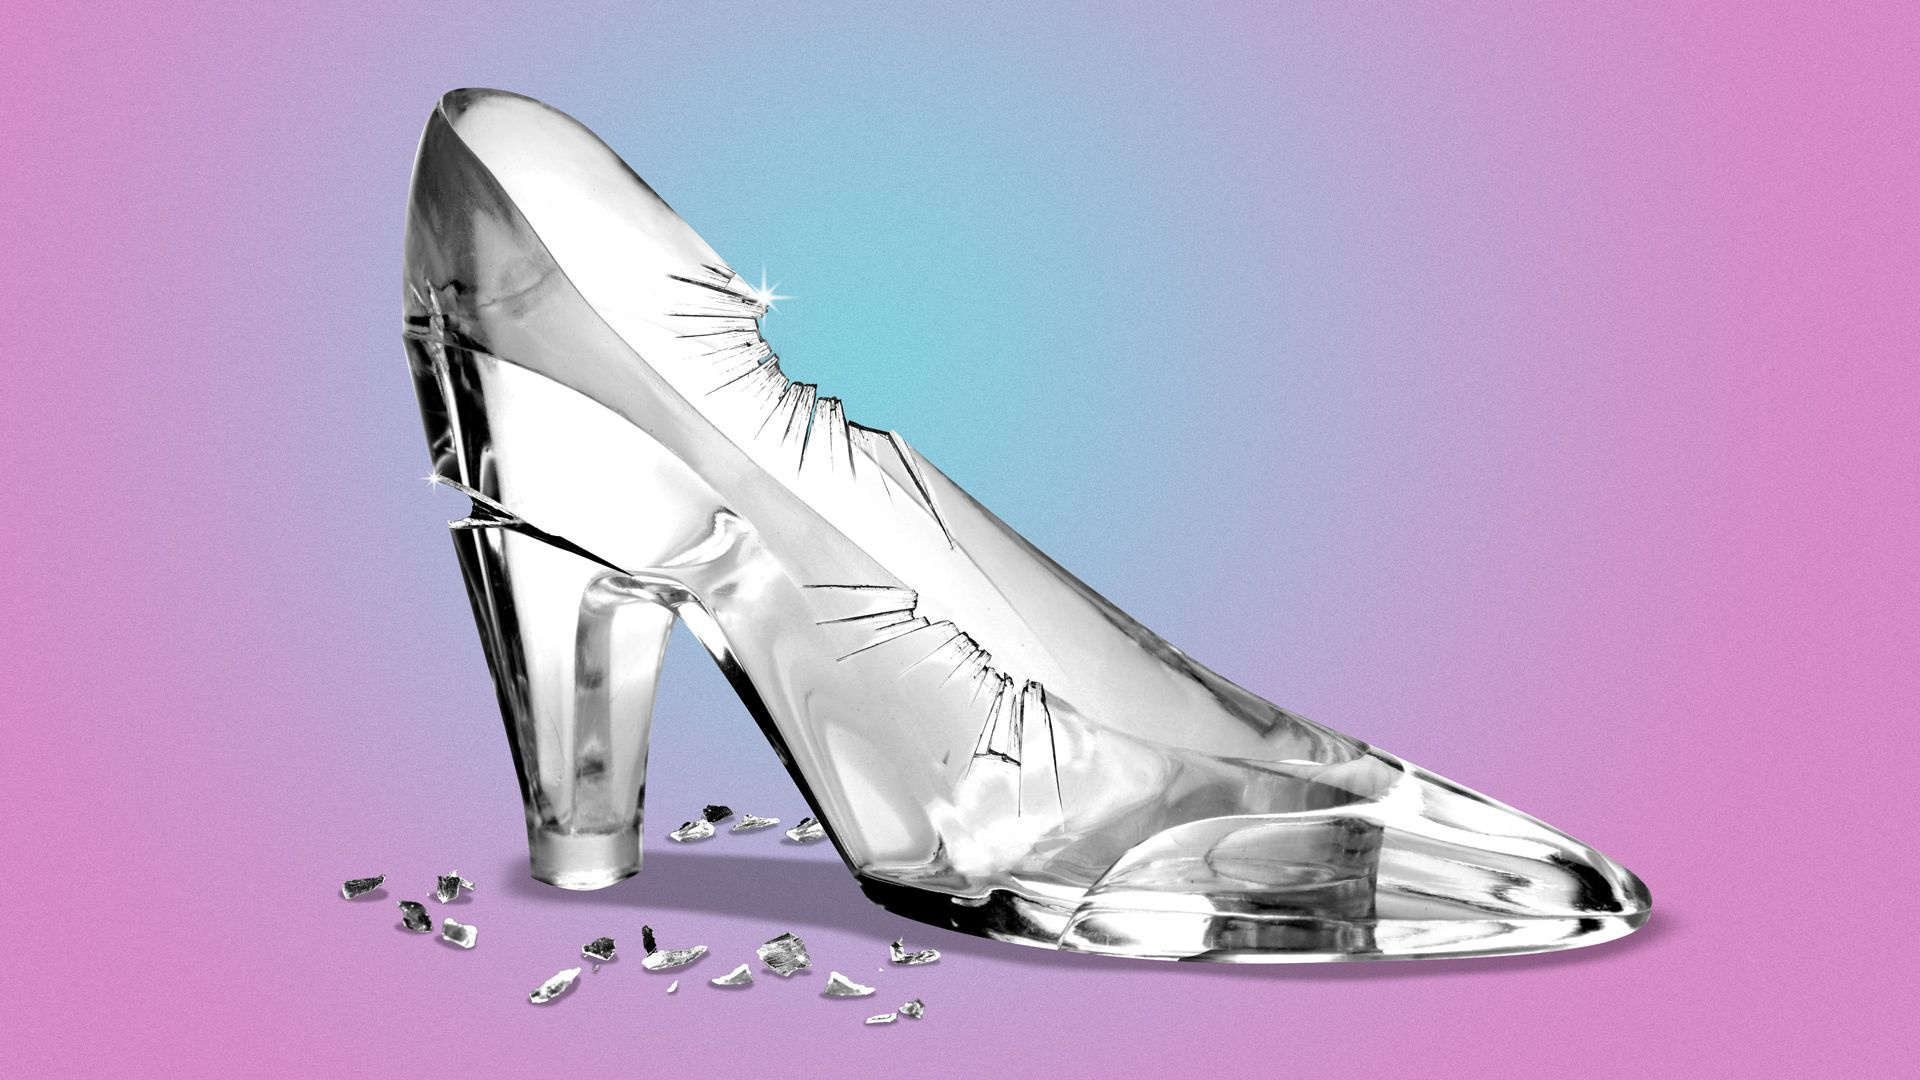 Illustration of a glass slipper with cracks in the glass.